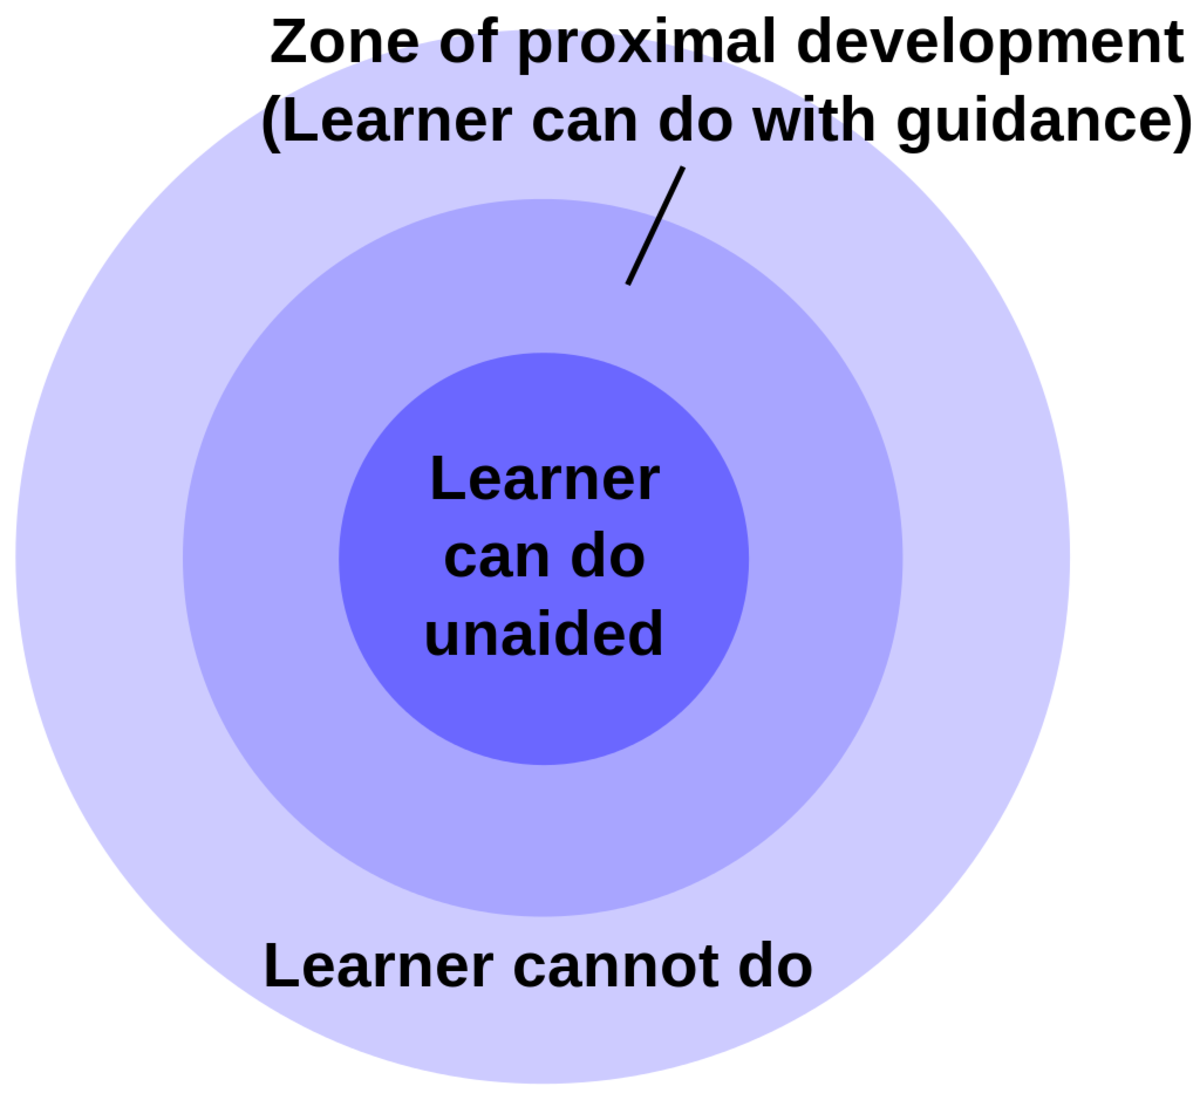 In the second circle, representing the zone of proximal development, students cannot complete tasks unaided, but can complete them with guidance.